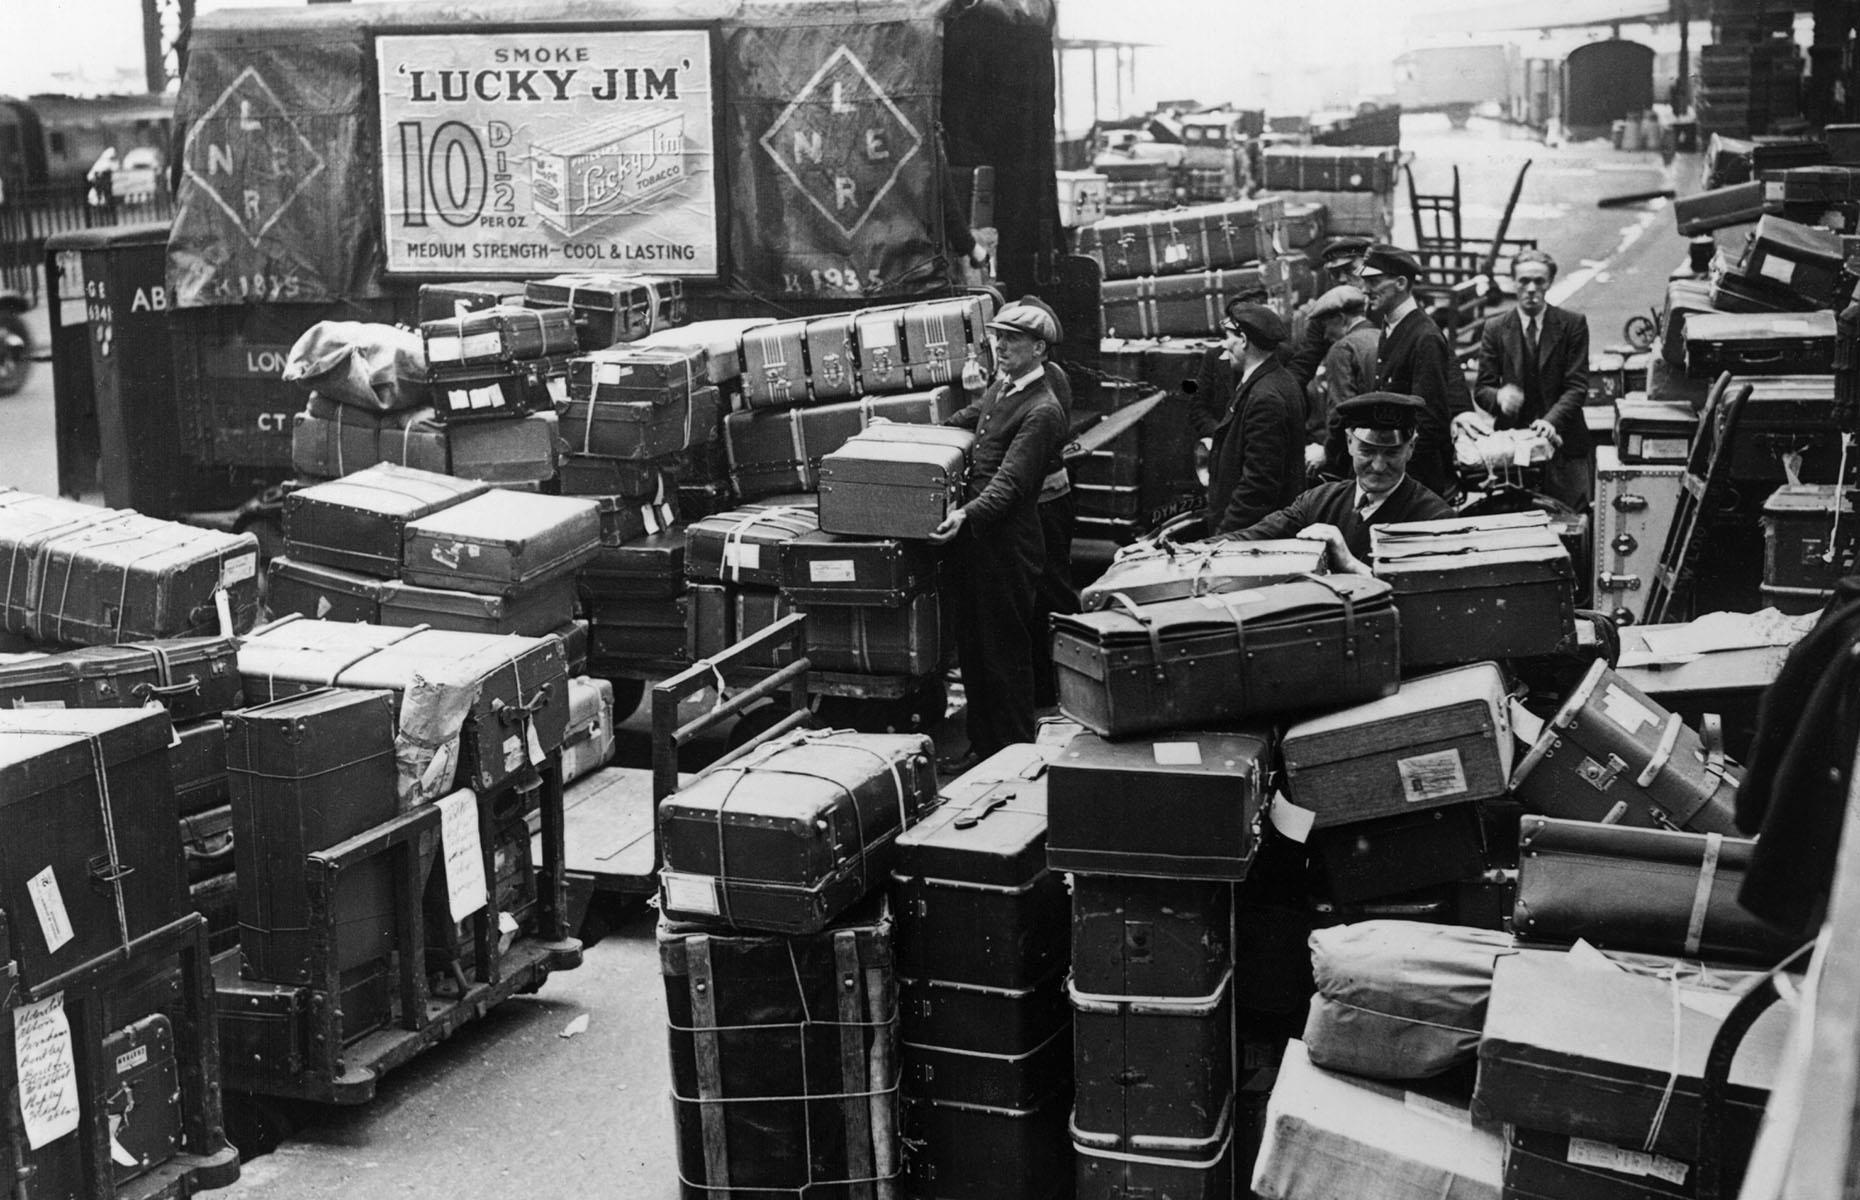 Slide 18 of 32: Whether it's train travel in the 1930s or jetting away on an airplane in the 2000s, there's still baggage to be loaded and unloaded. Here baggage men unload passengers' suitcases from a train that's arrived at London Waterloo station. Take a look at how air travel has changed in the last 100 years.